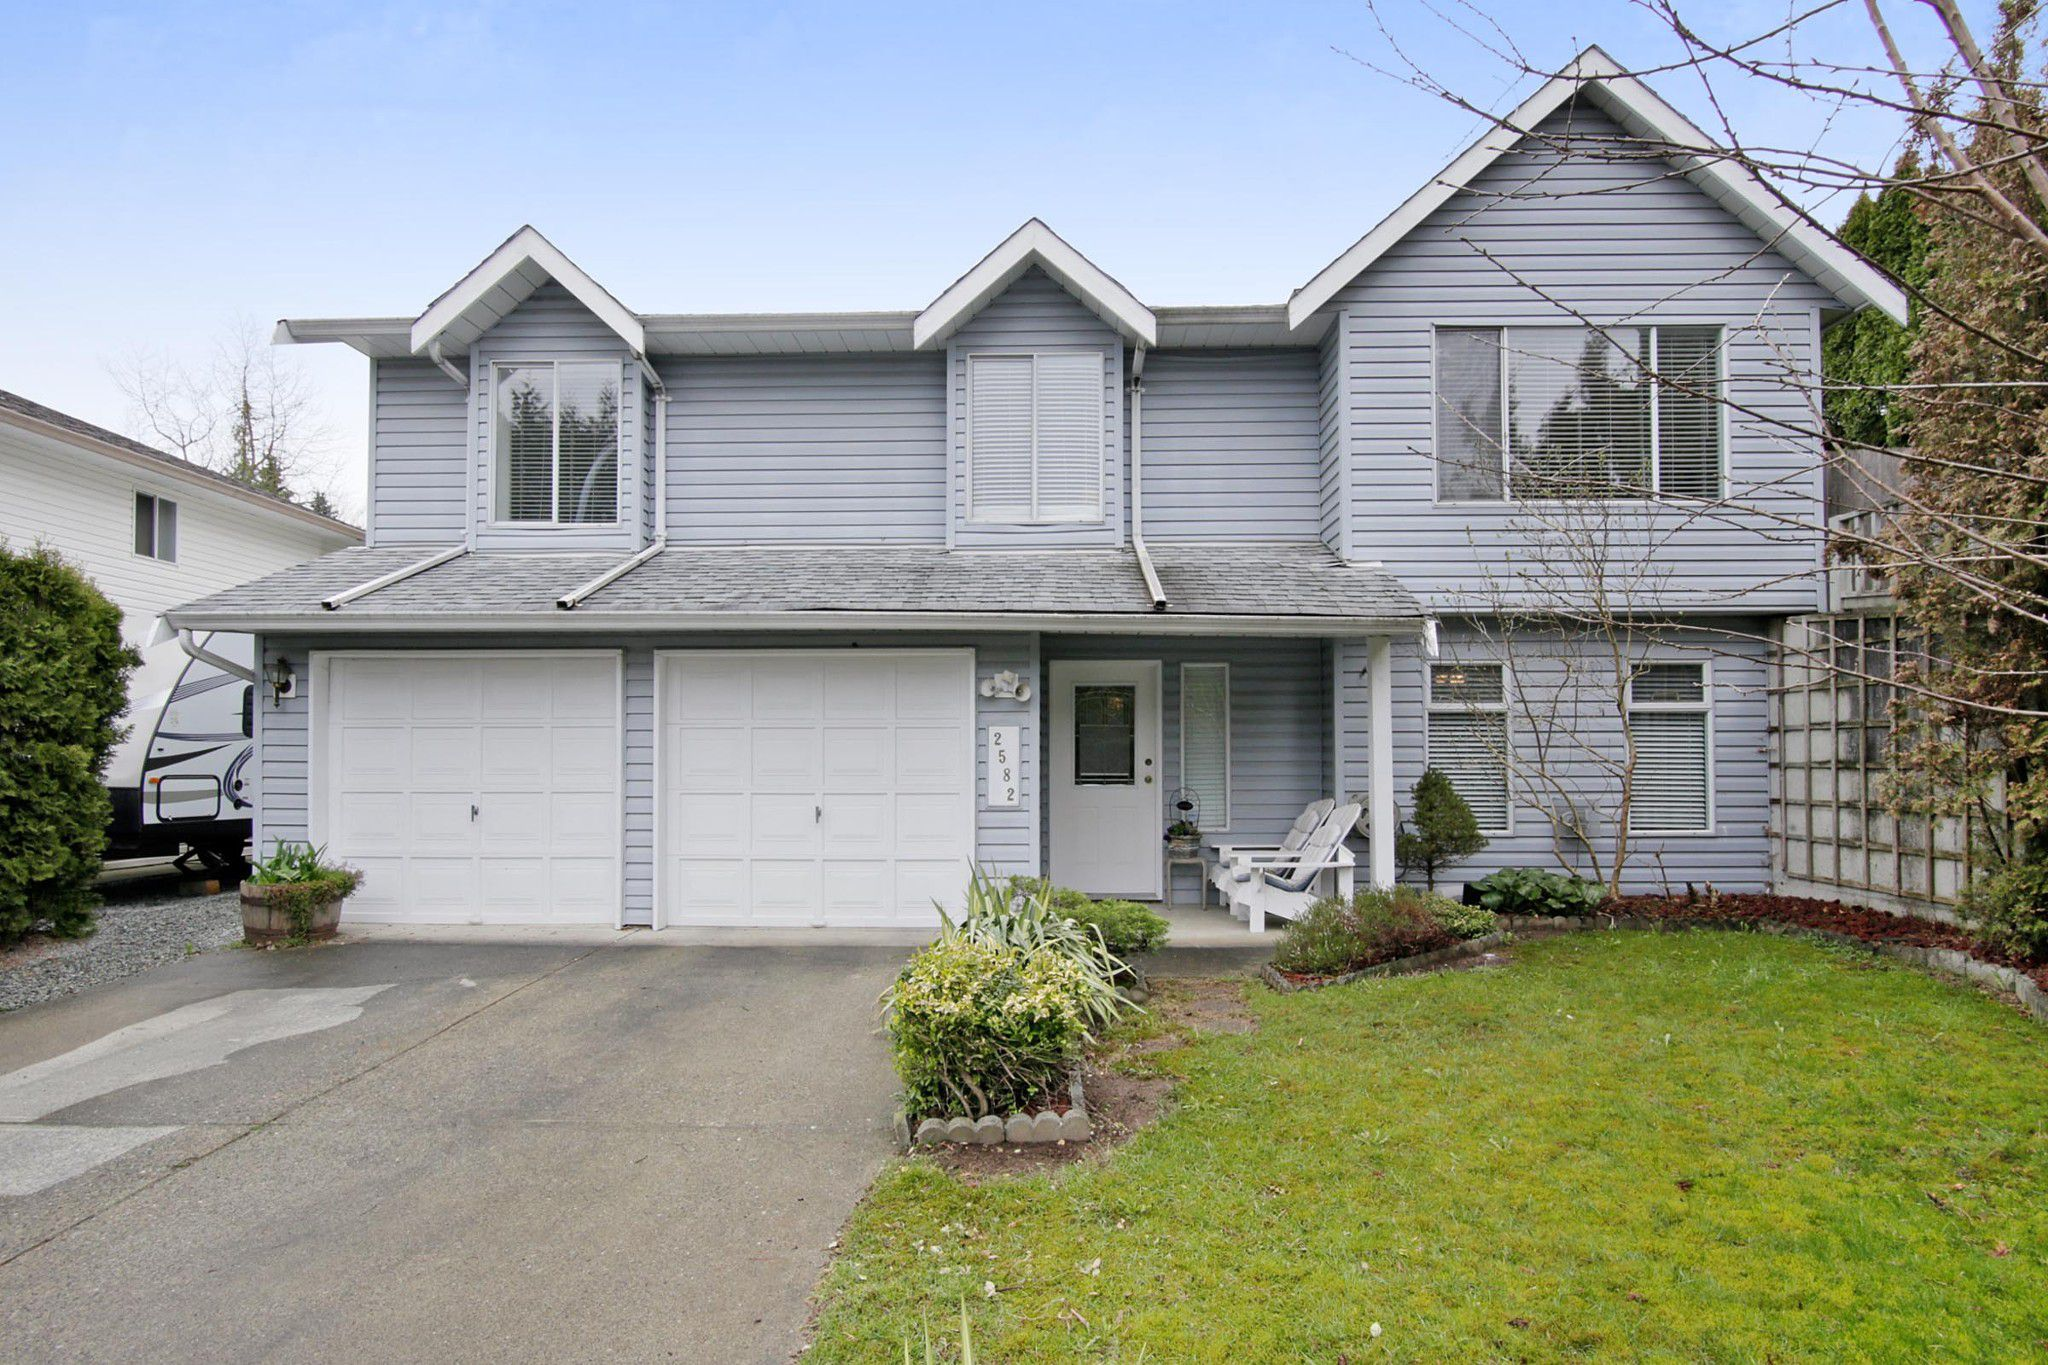 Main Photo: 2582 MITCHELL Street in Abbotsford: Abbotsford West House for sale : MLS®# R2251993